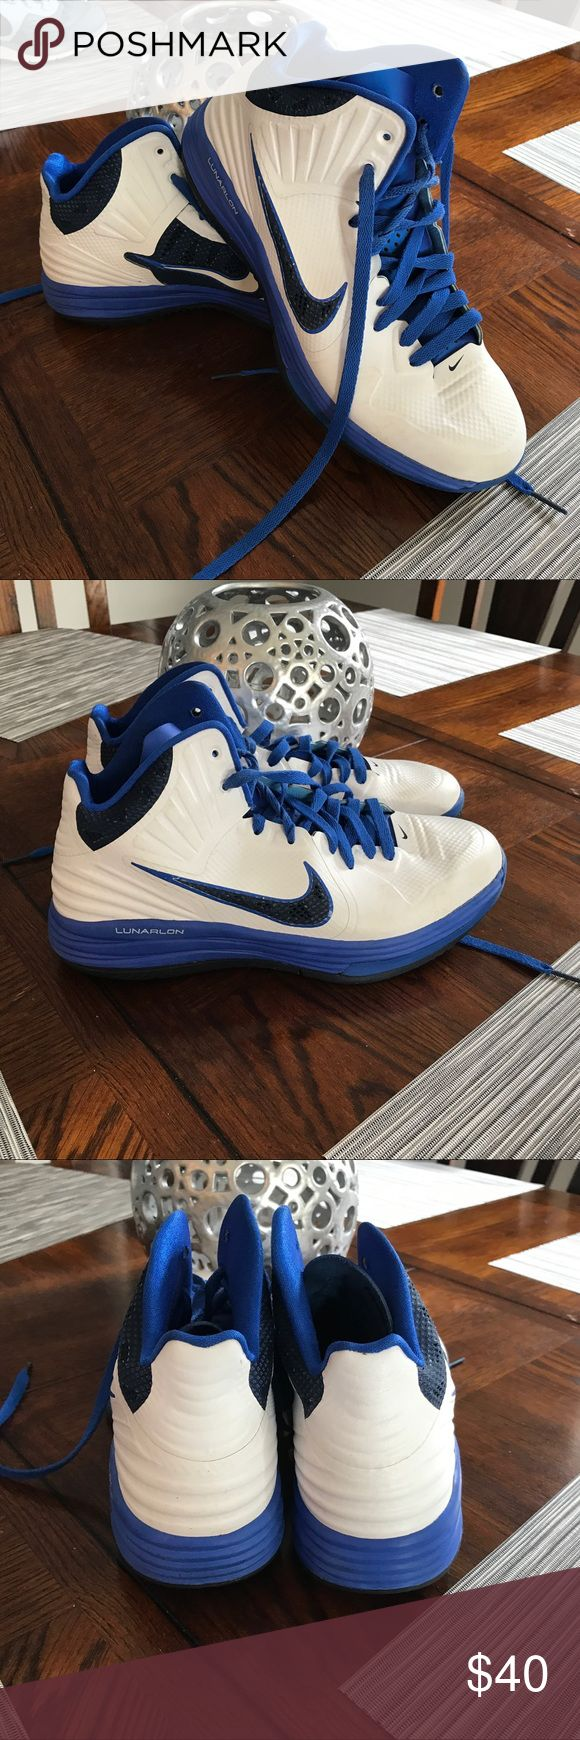 Nike women's basketball shoes Slightly used but in very good condition. Size 9 in women's Nike Shoes Athletic Shoes